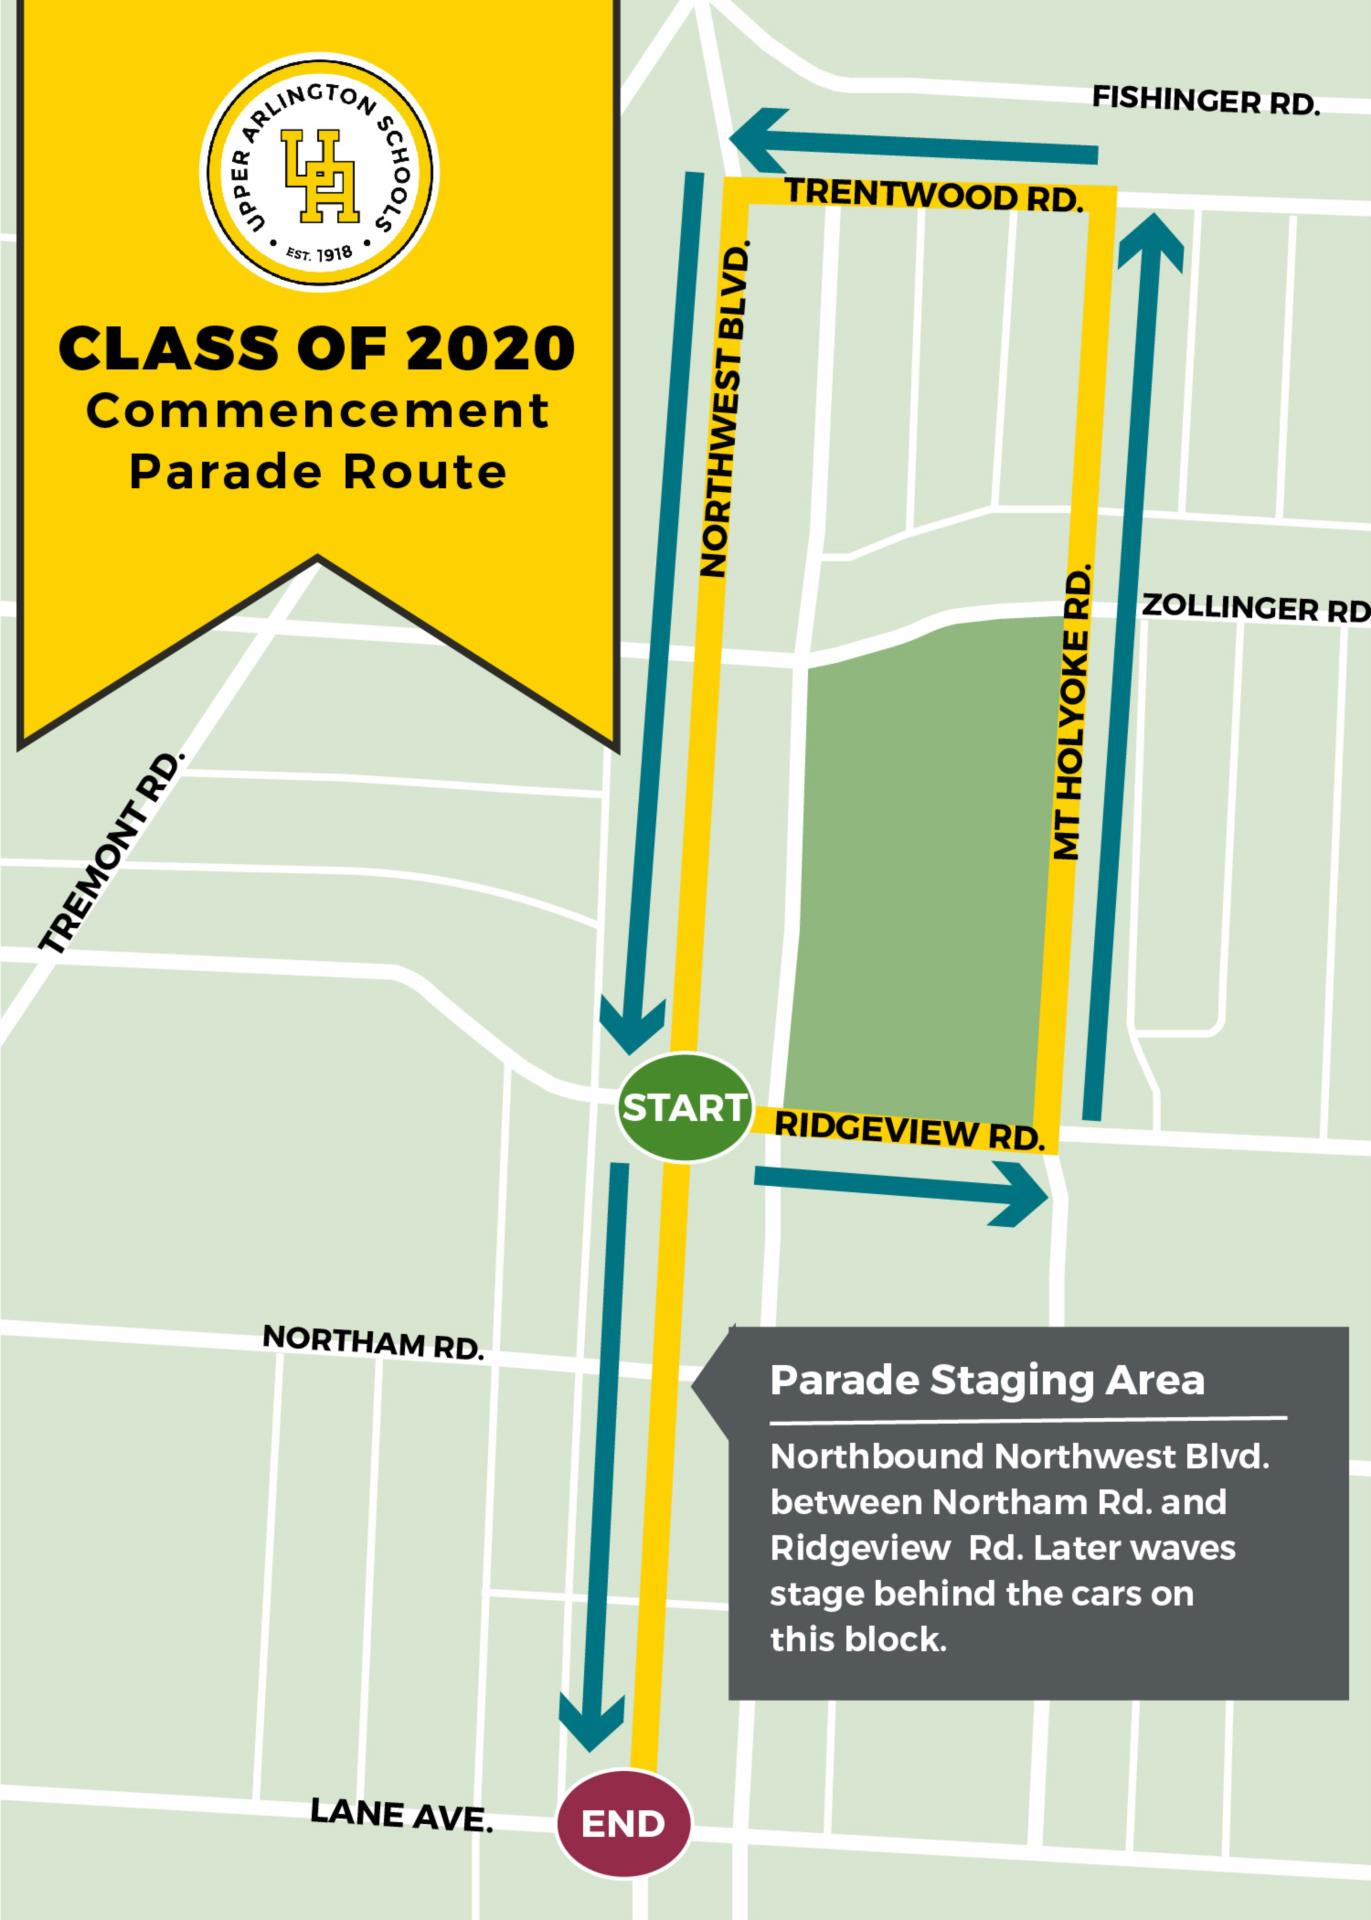 A map of the parade route